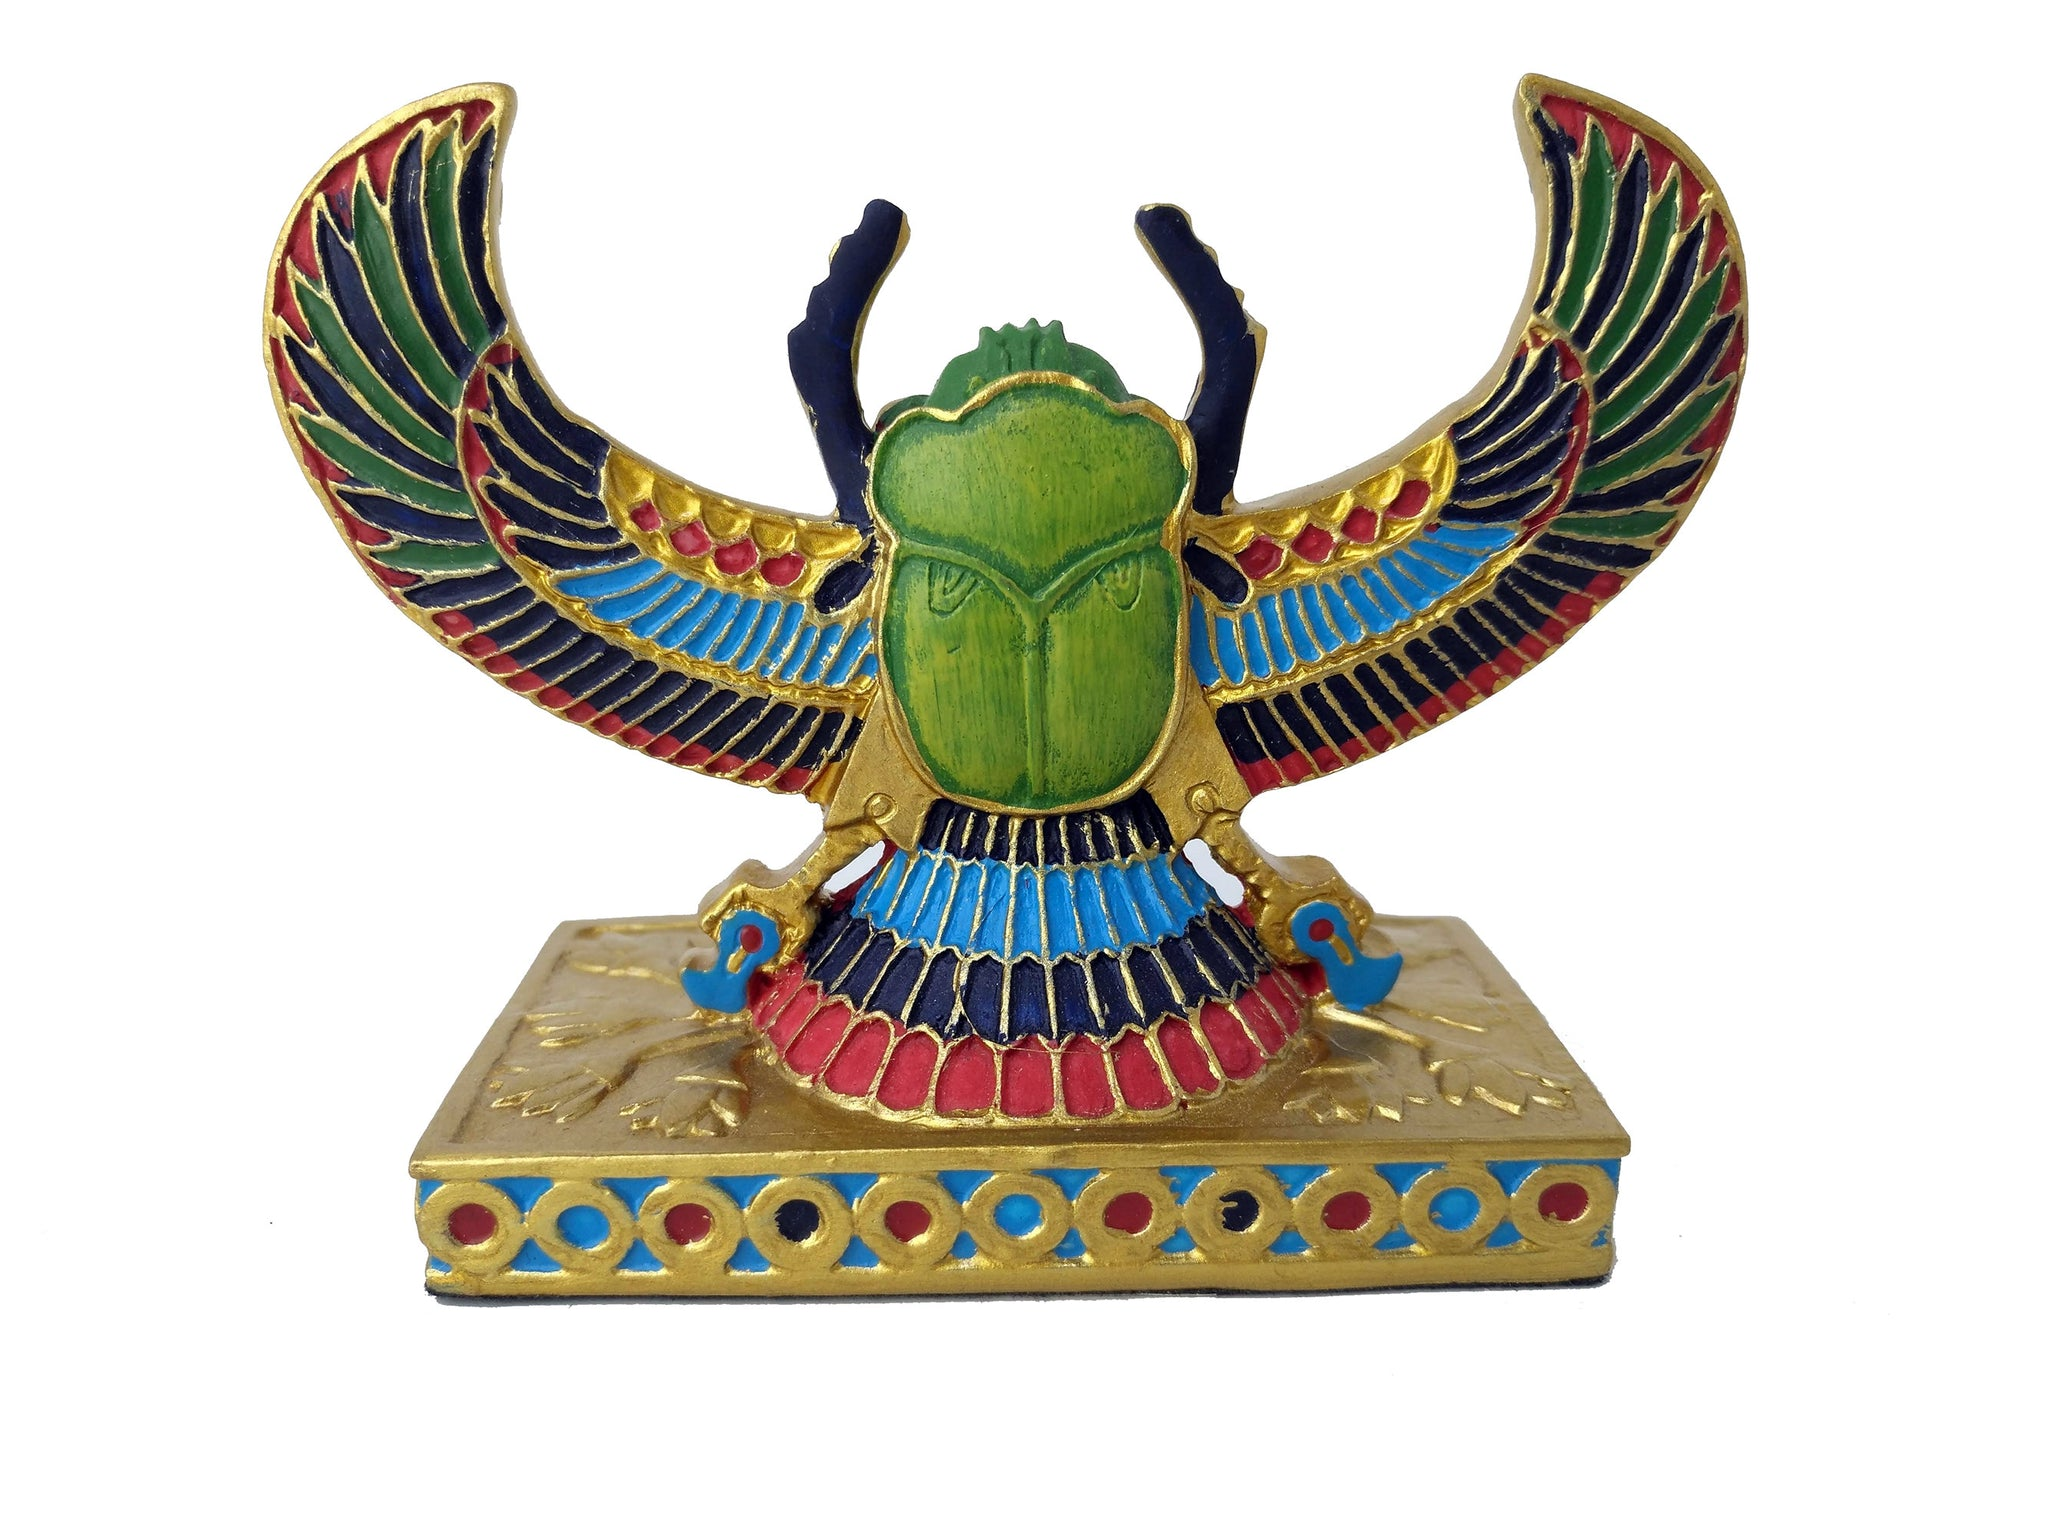 Winged Scarab Beetle Statue - Egyptian Scarab Beetle with Wings representing God Khepri Ancient Egyptian Positivity & Good Fortune Talisman